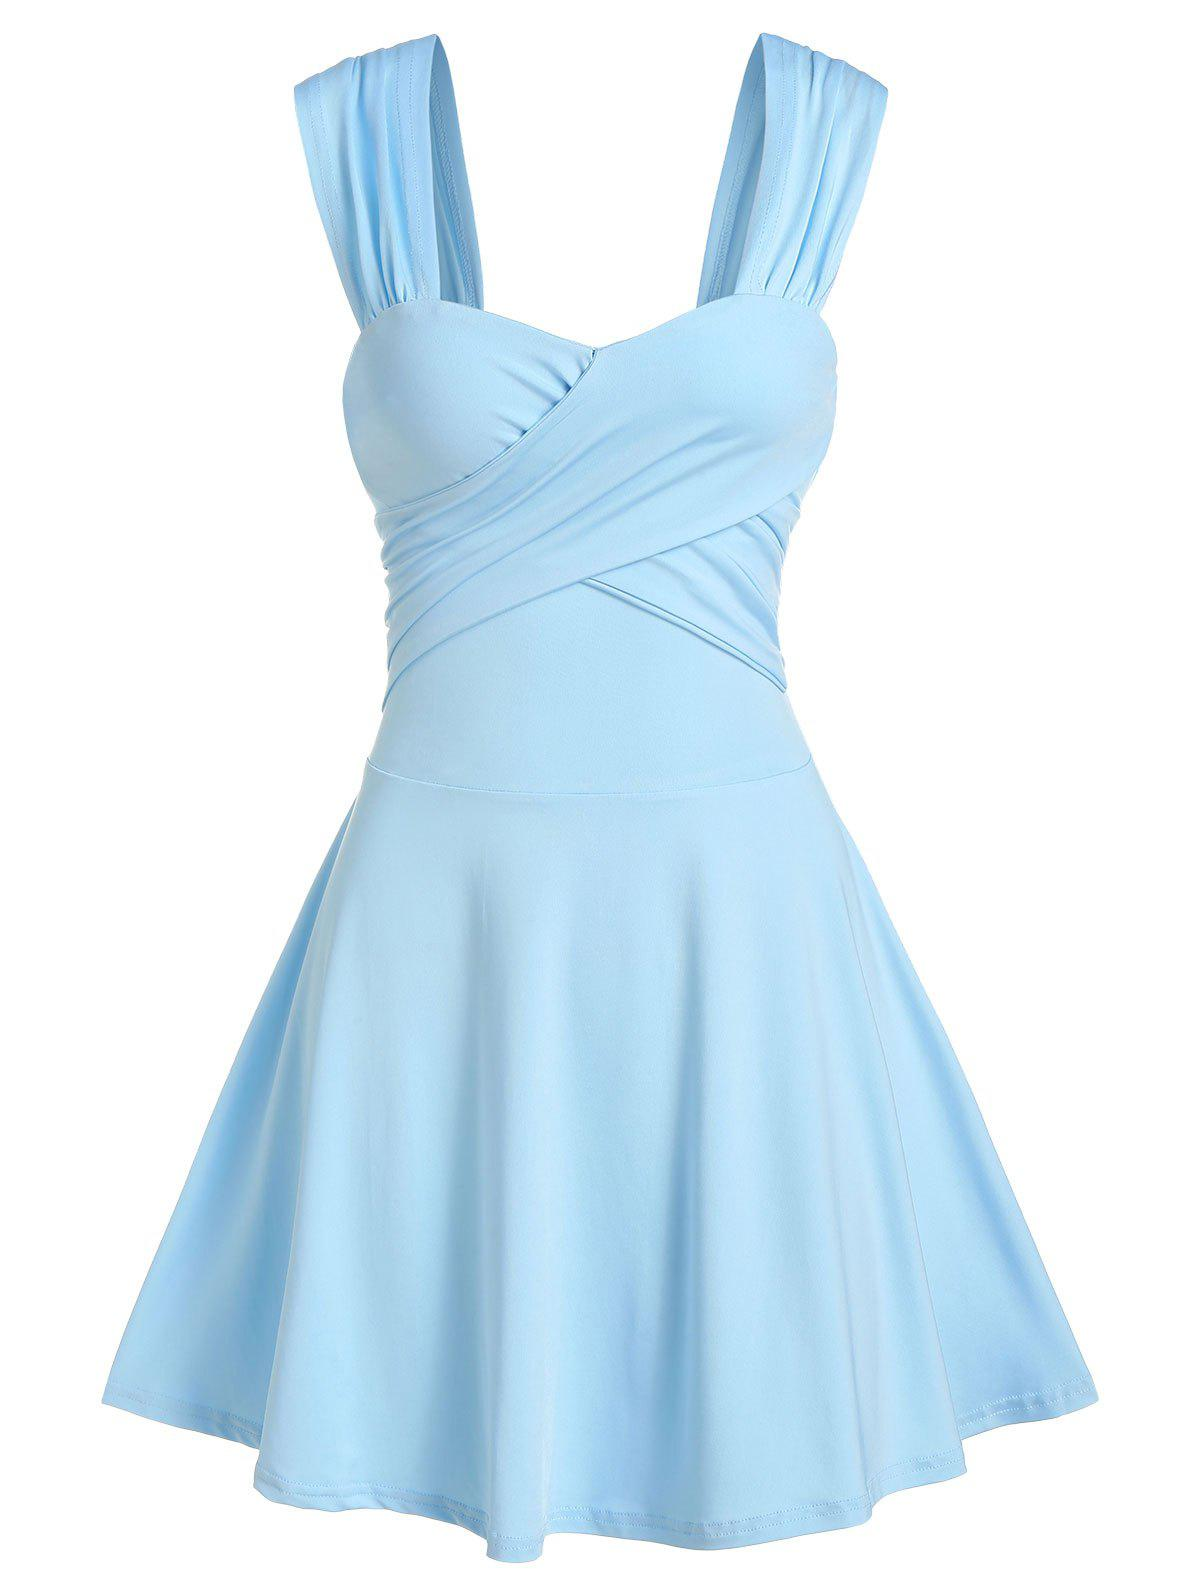 Sleeveless Crossover Flare Dress - DAY SKY BLUE M